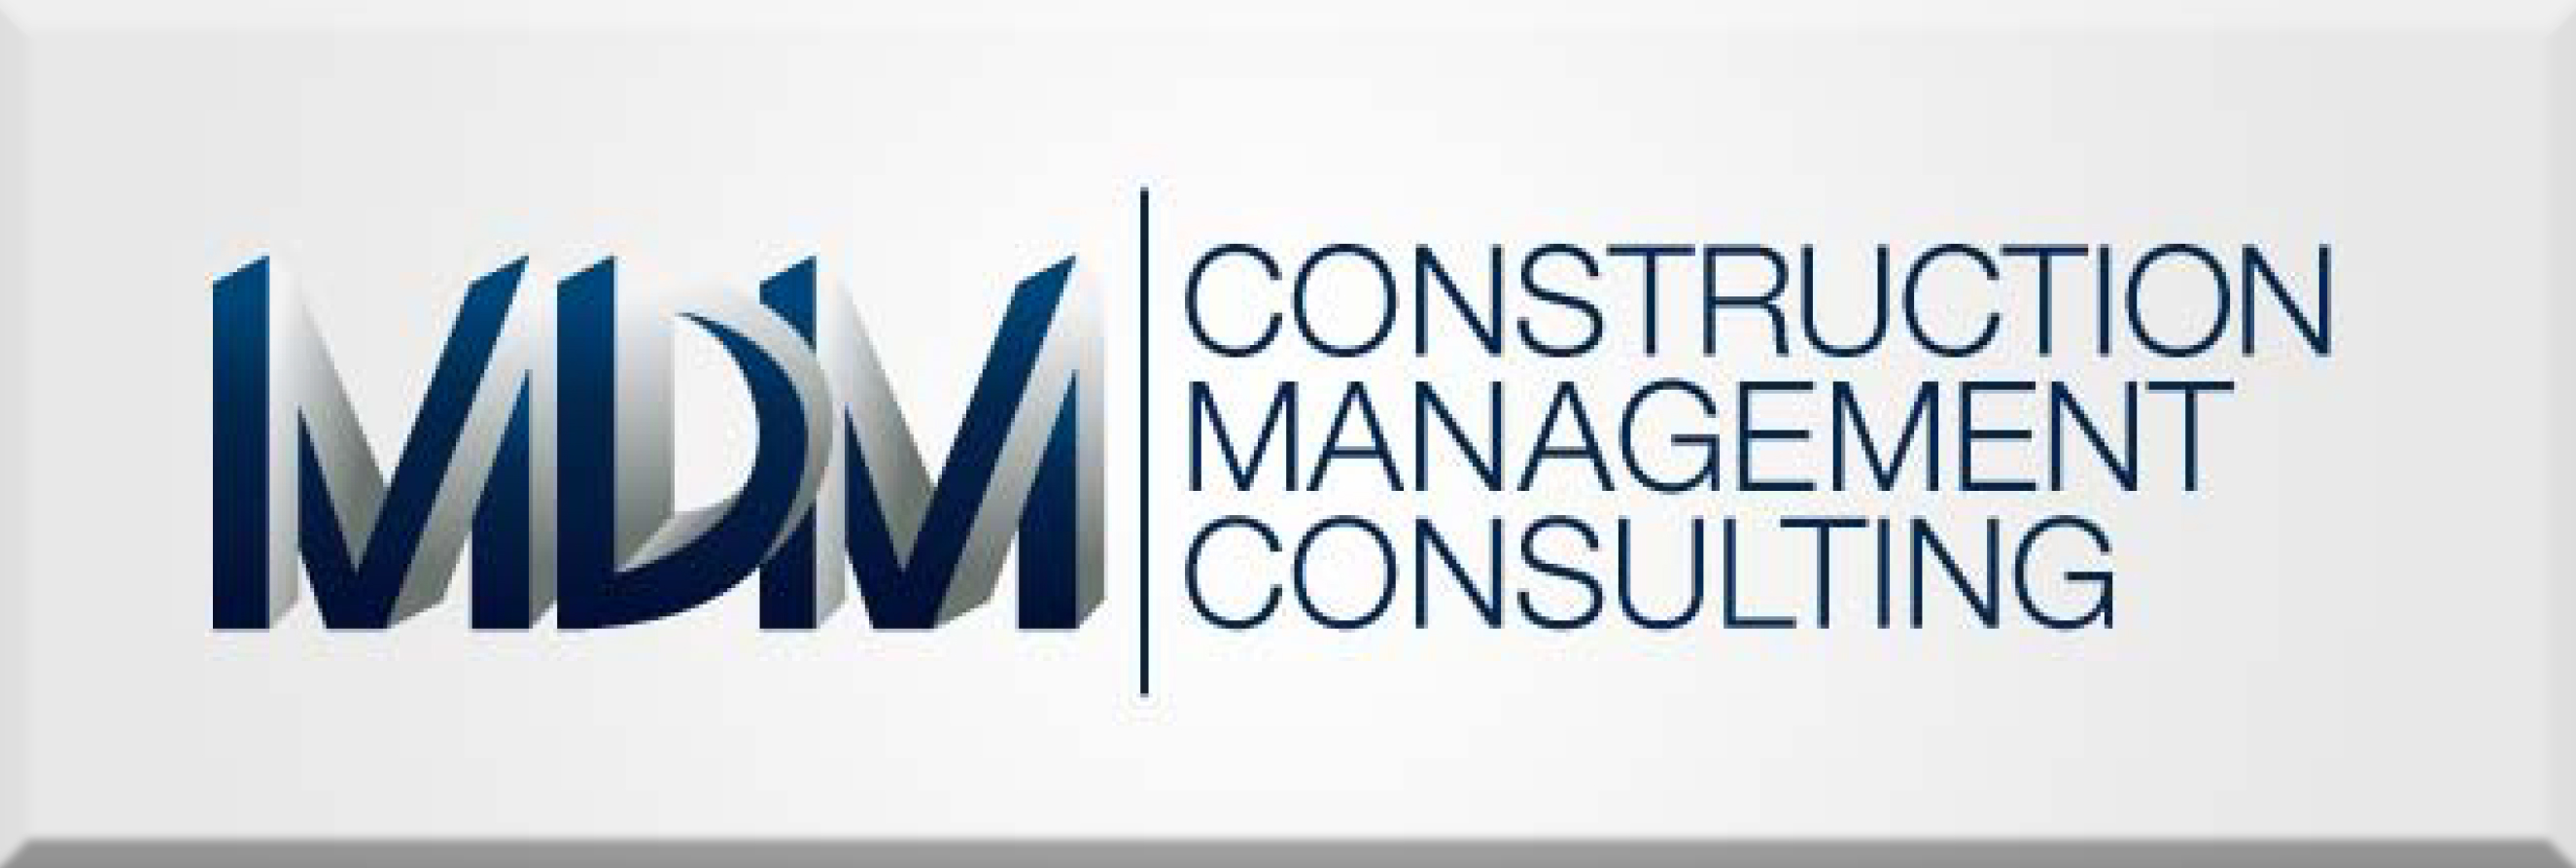 MDM Construction Management Consulting, LLC